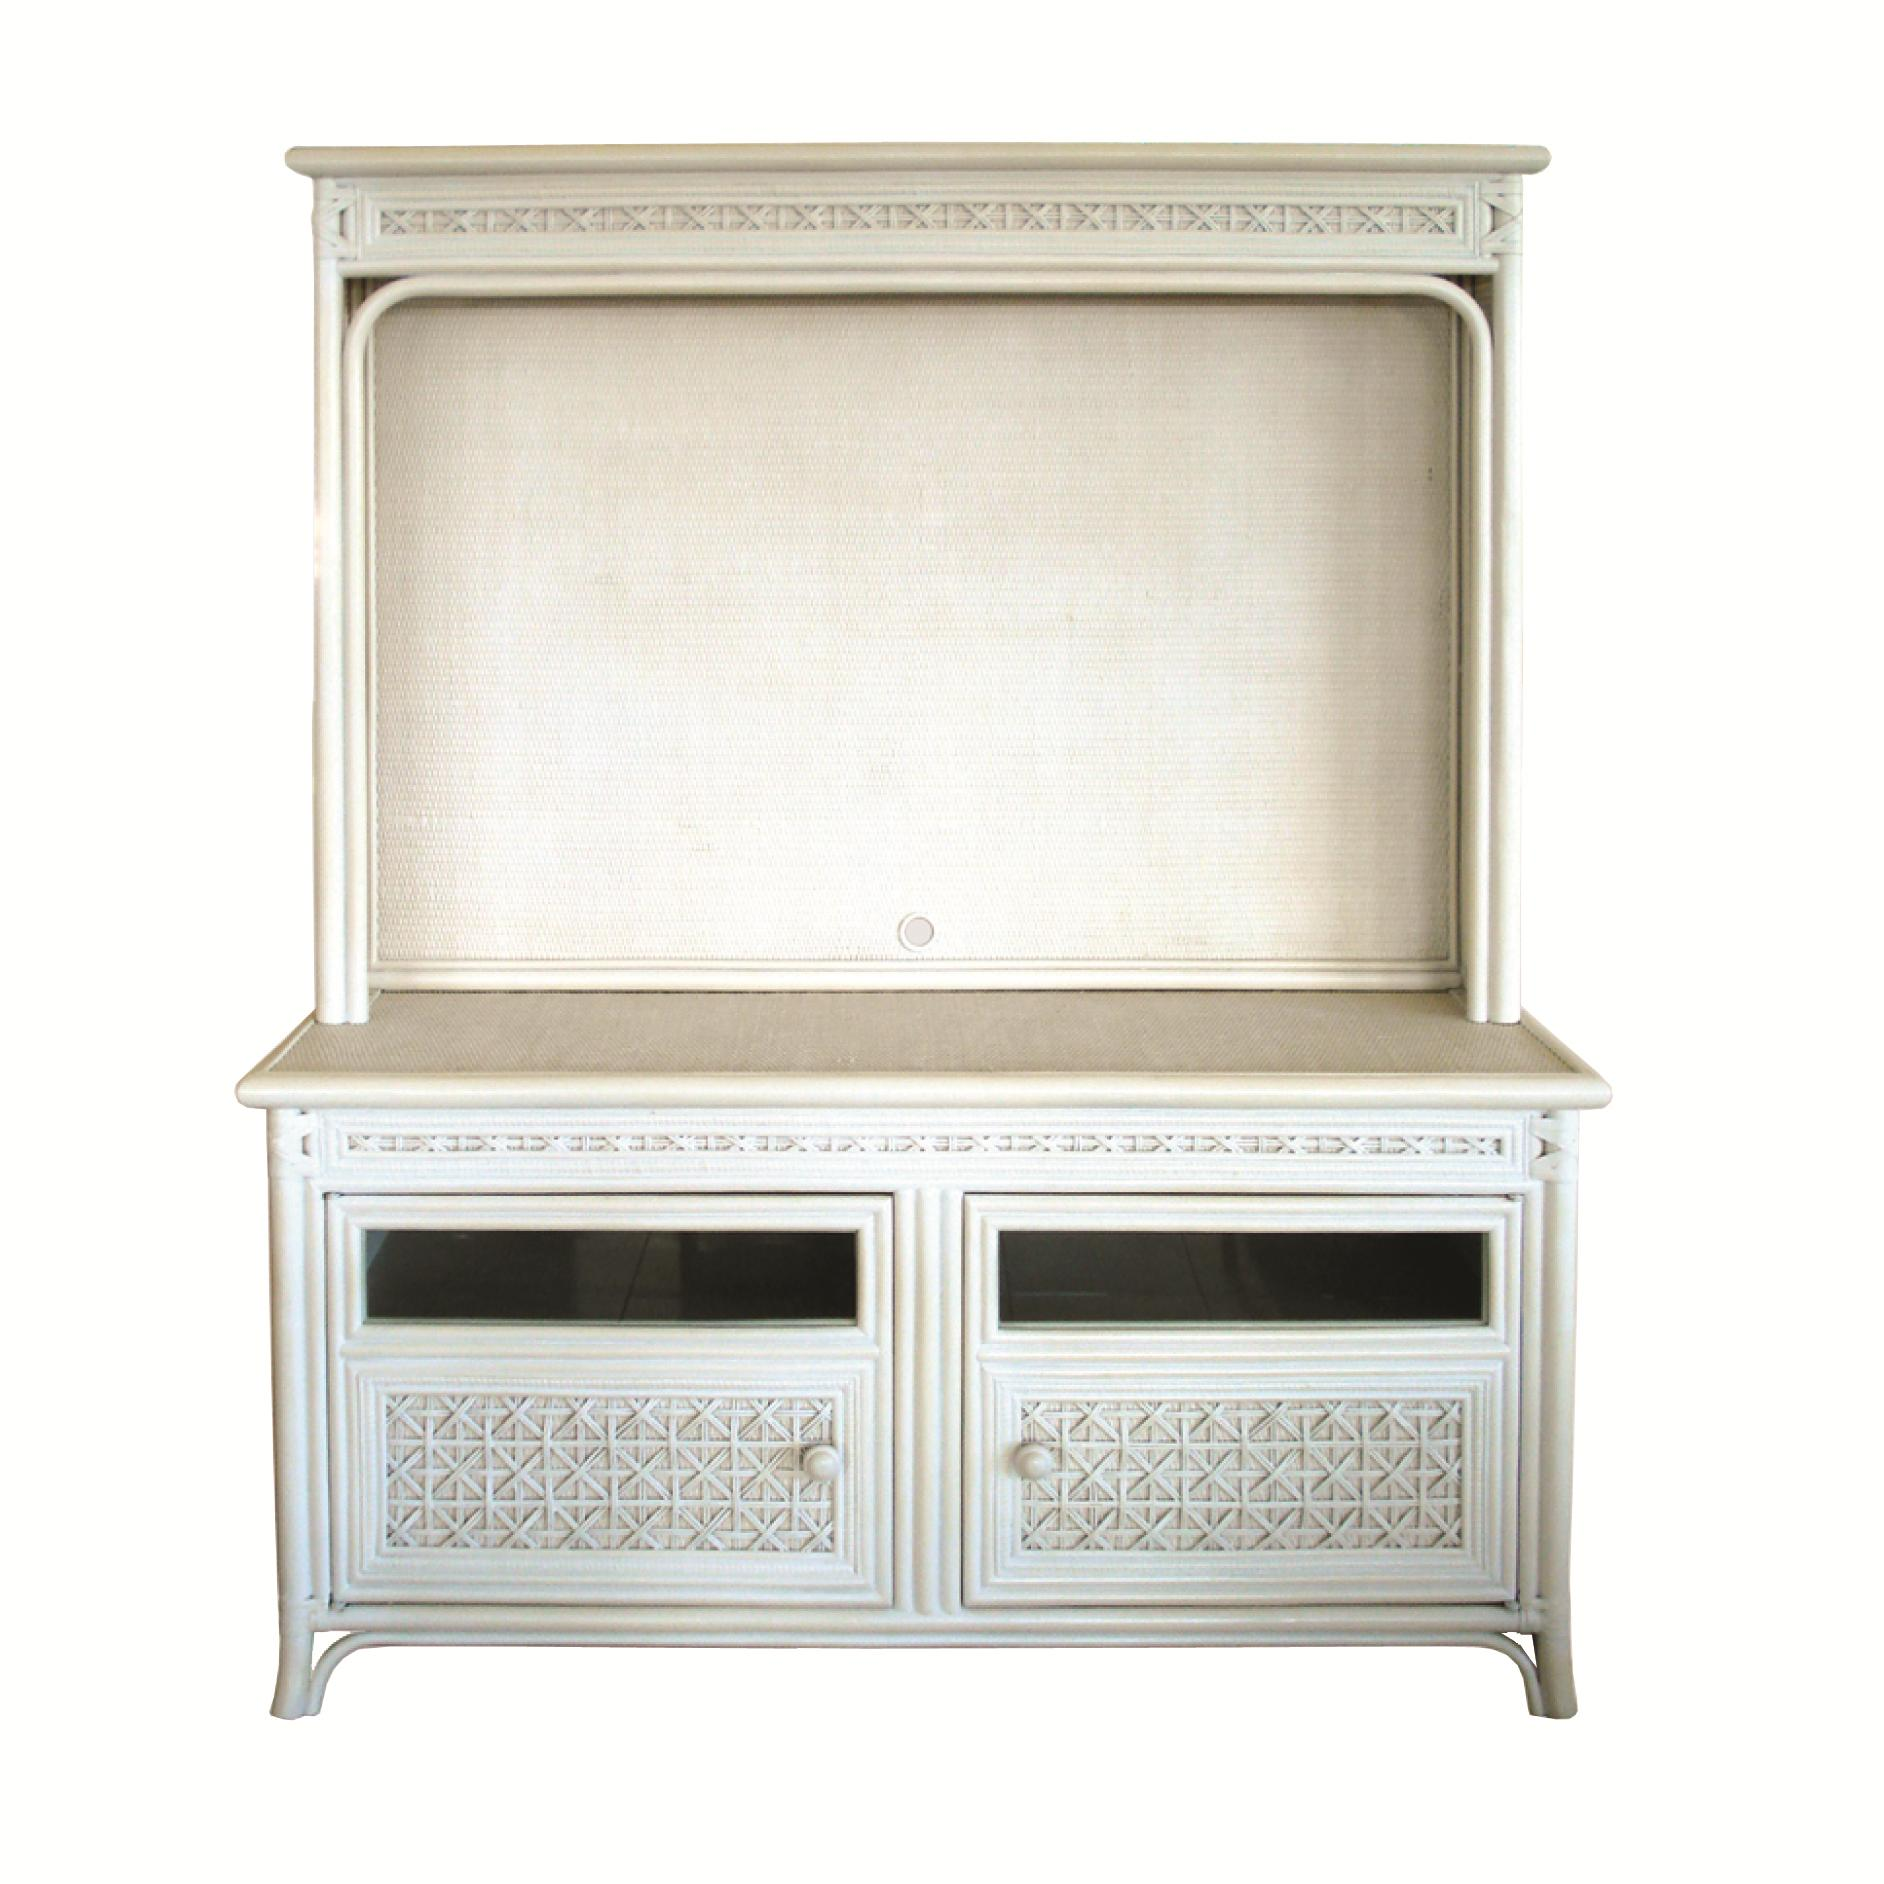 341 Collection Plasma TV Unit by Capris Furniture at Esprit Decor Home Furnishings